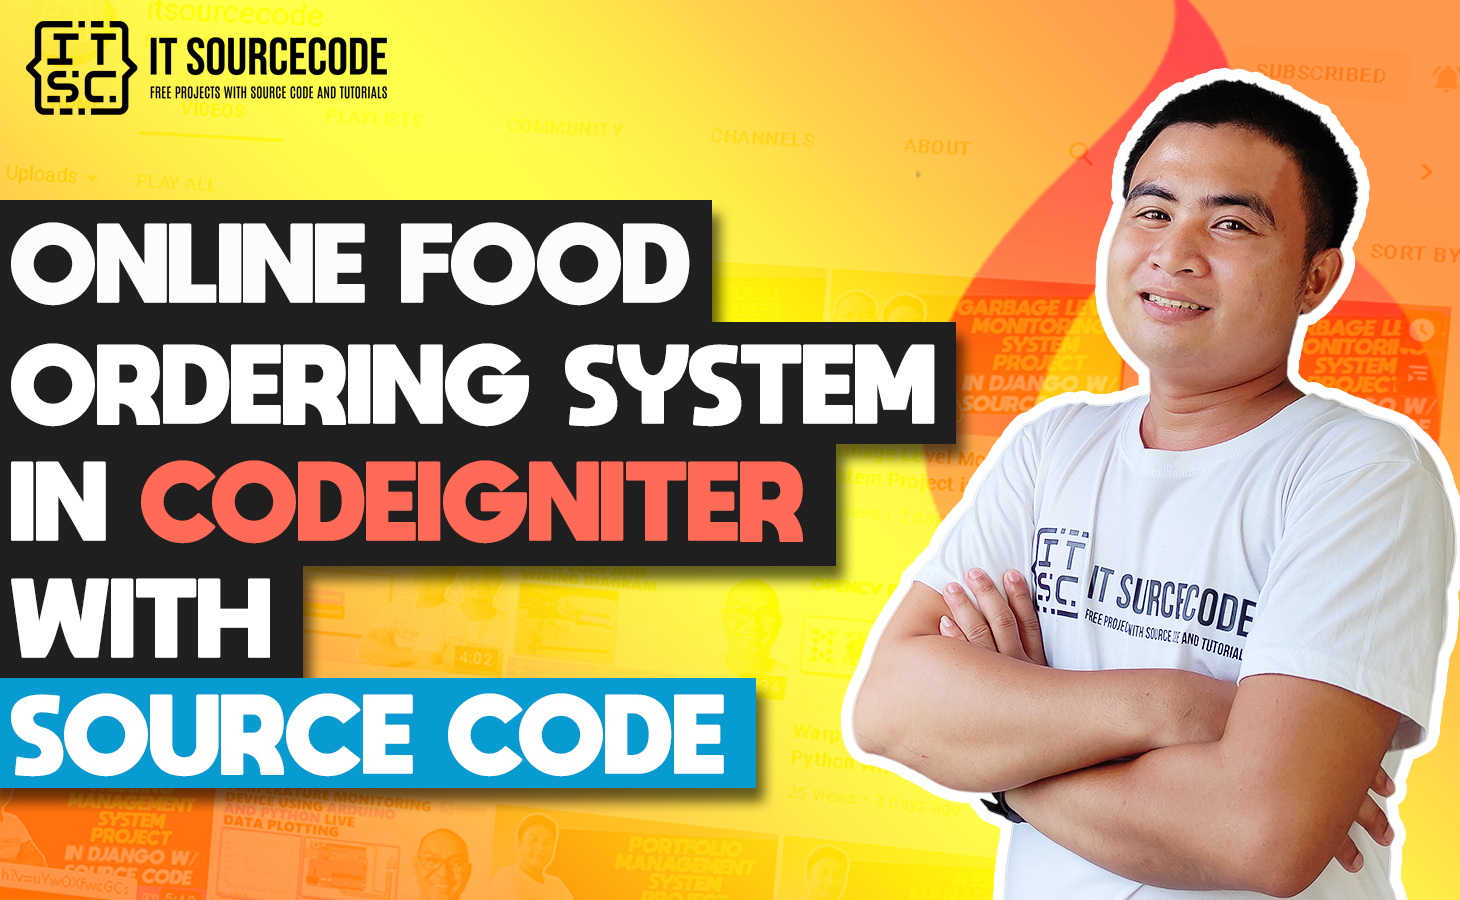 Online Food Ordering System In CodeIgniter With Source Code